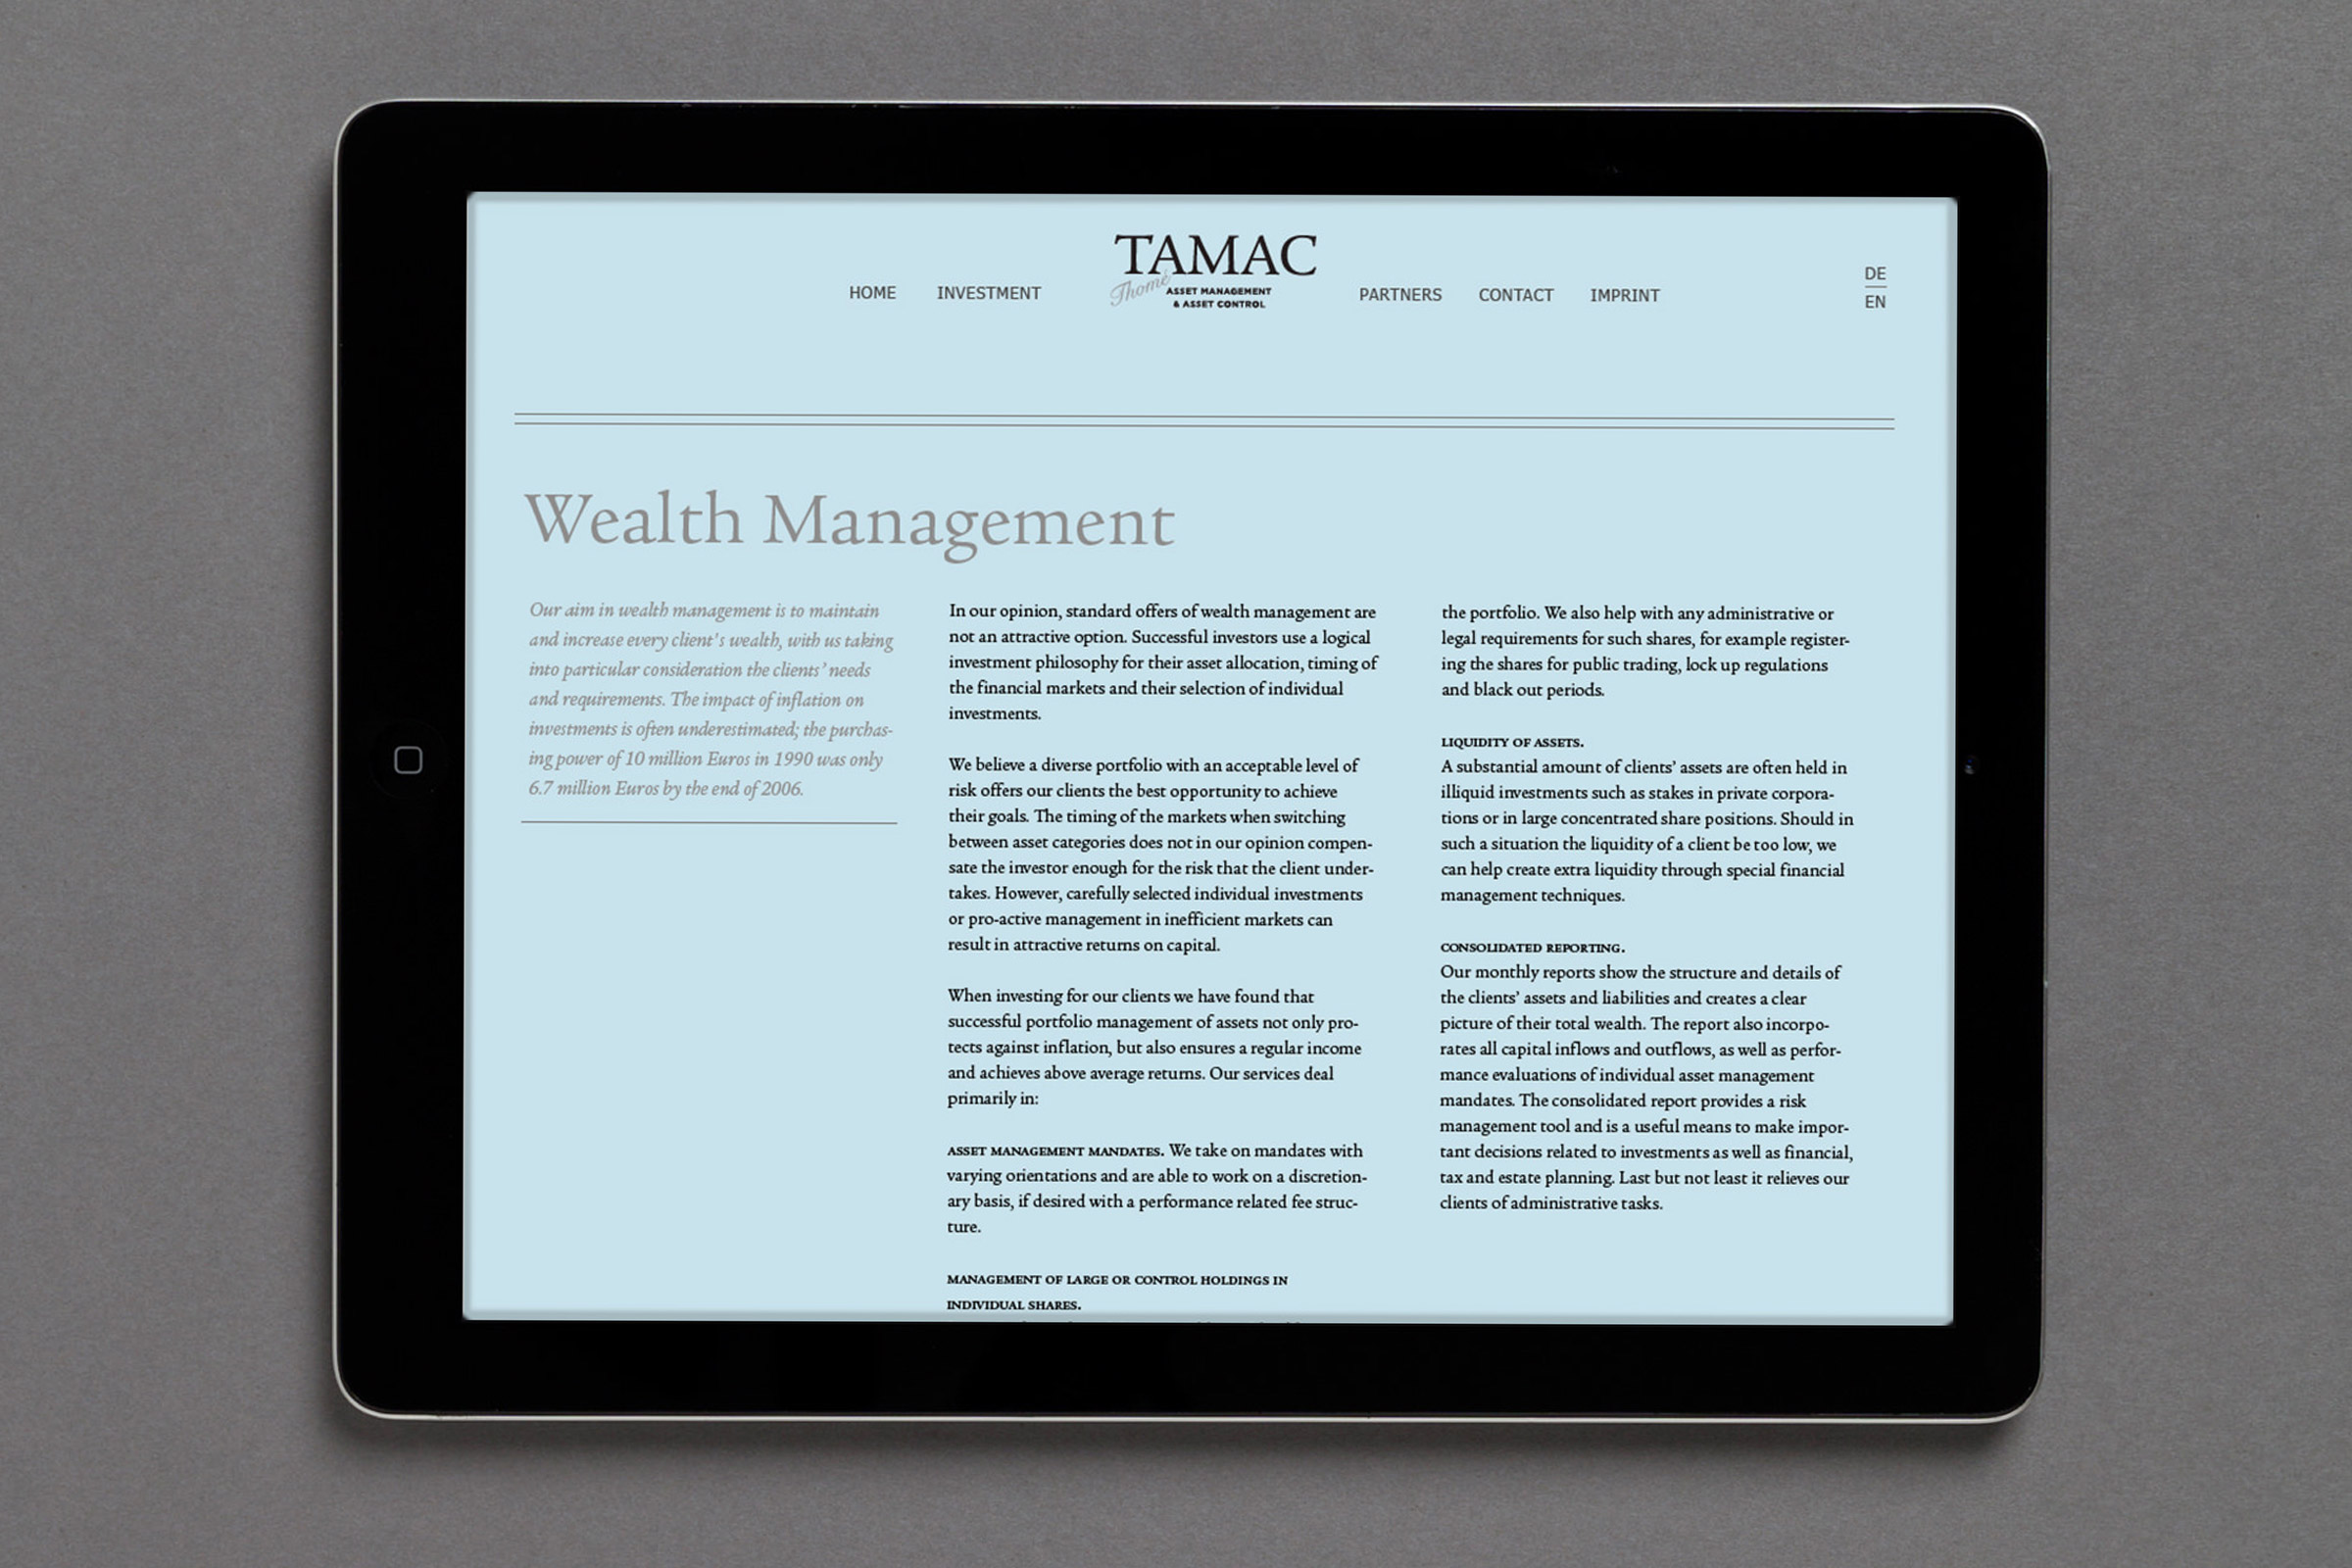 private wealth management, familienvermögen, website, ipad, london